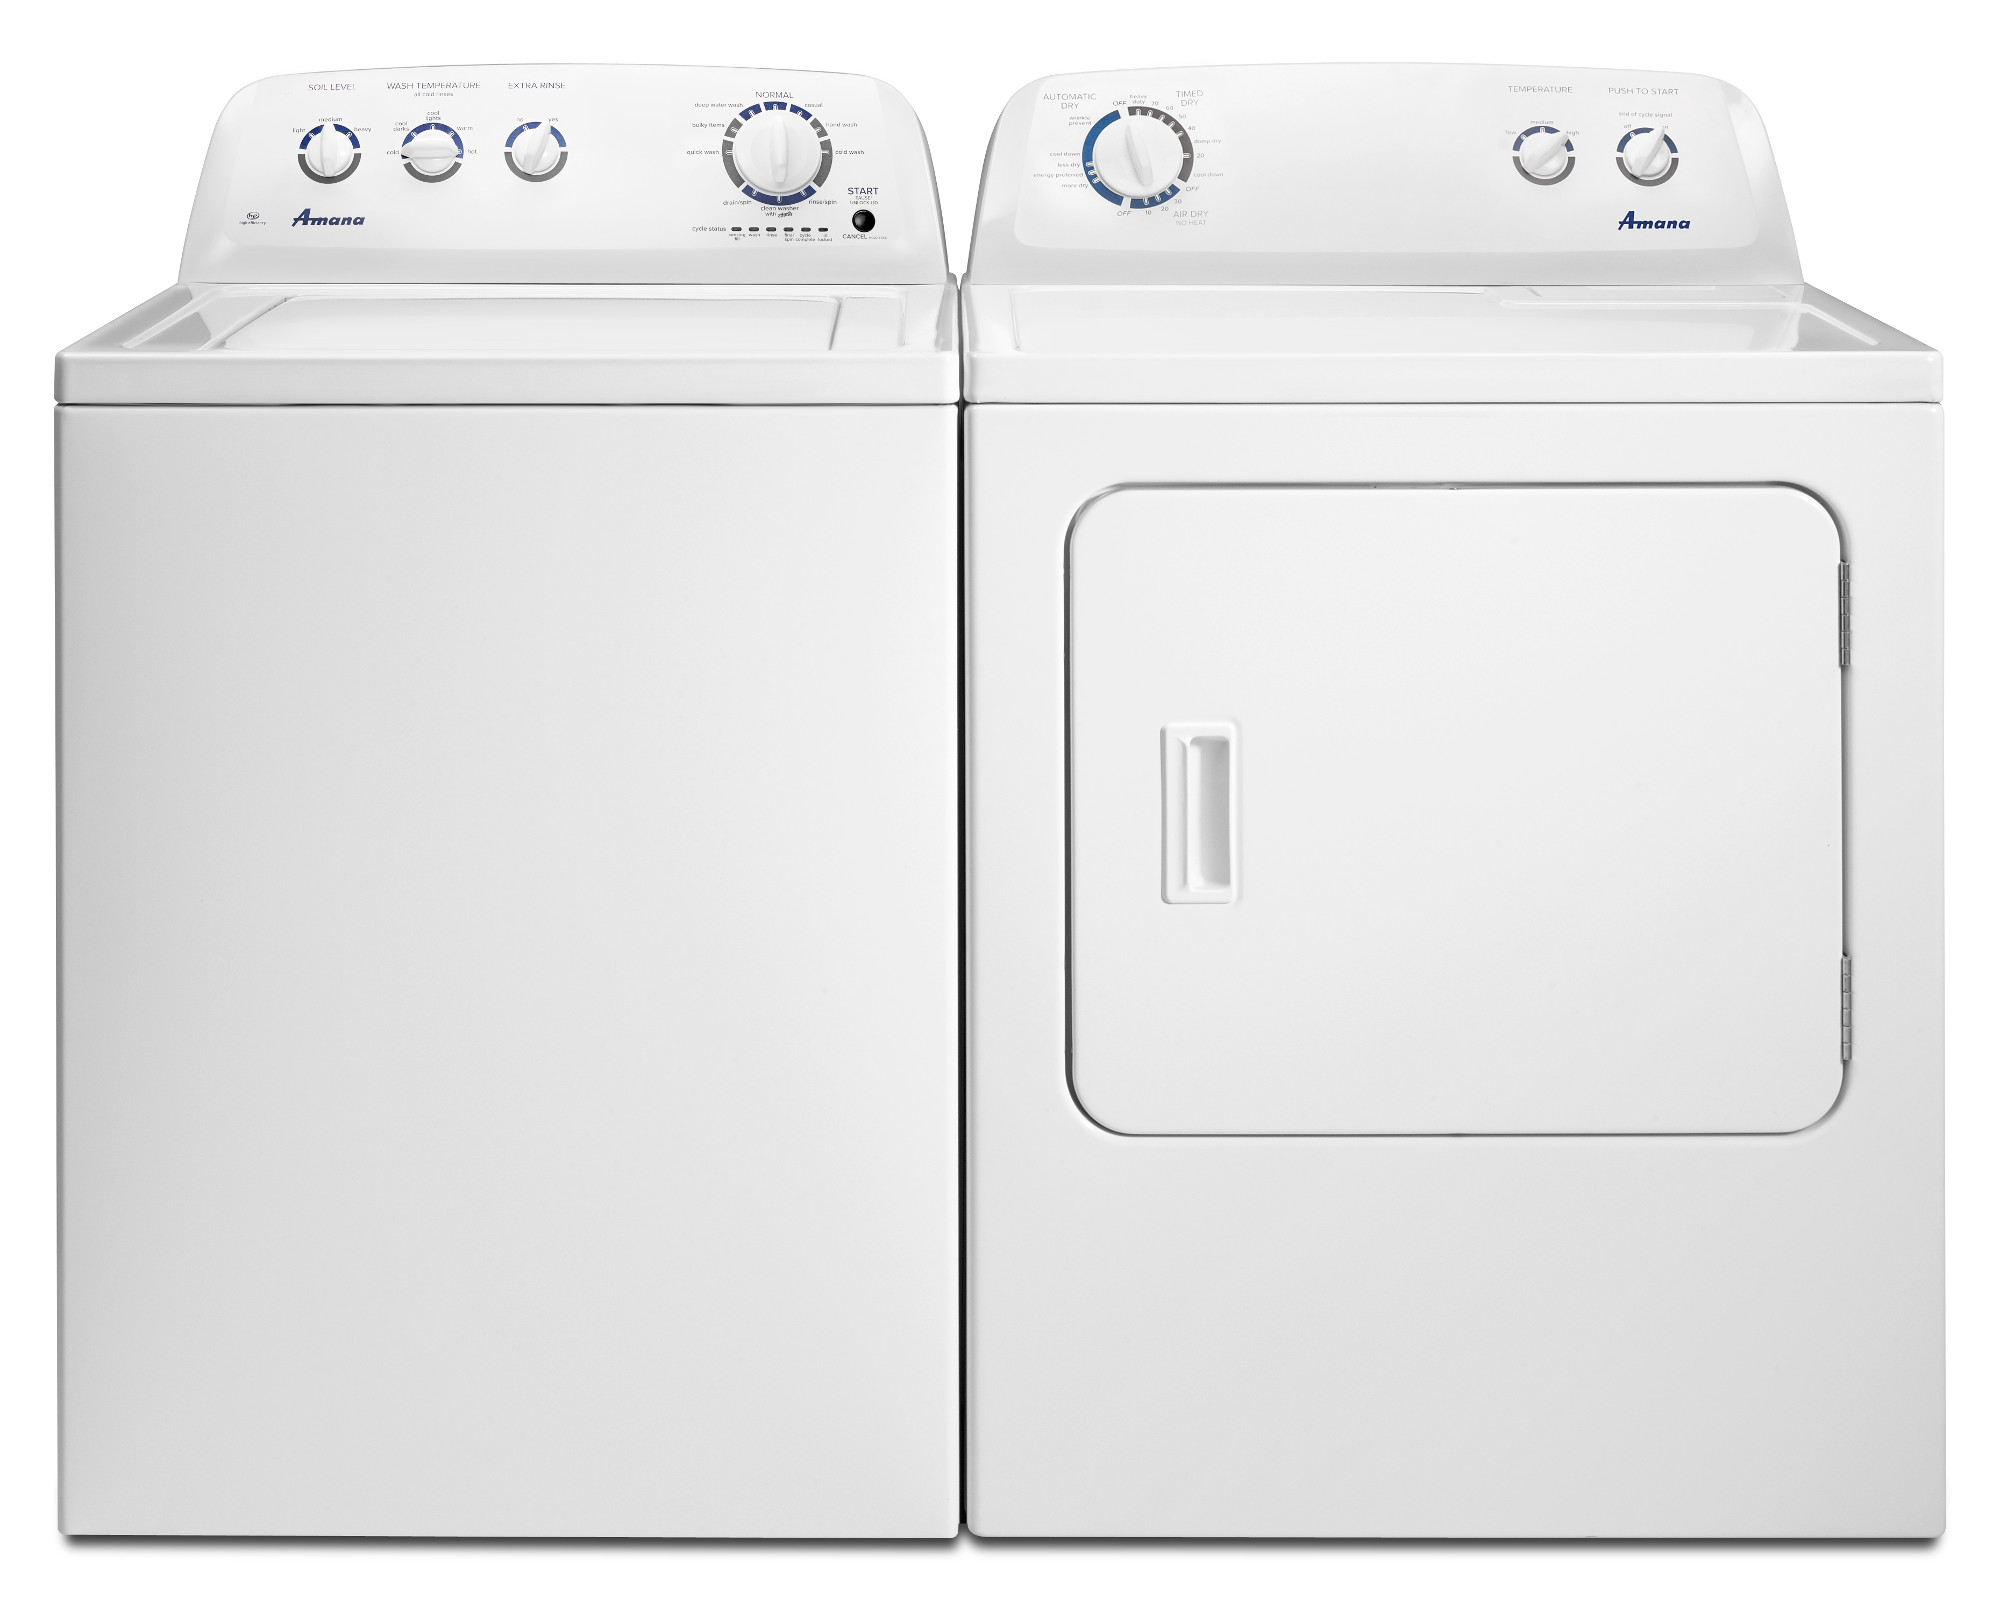 Amana 7.0 cu. ft.  Electric Dryer - White